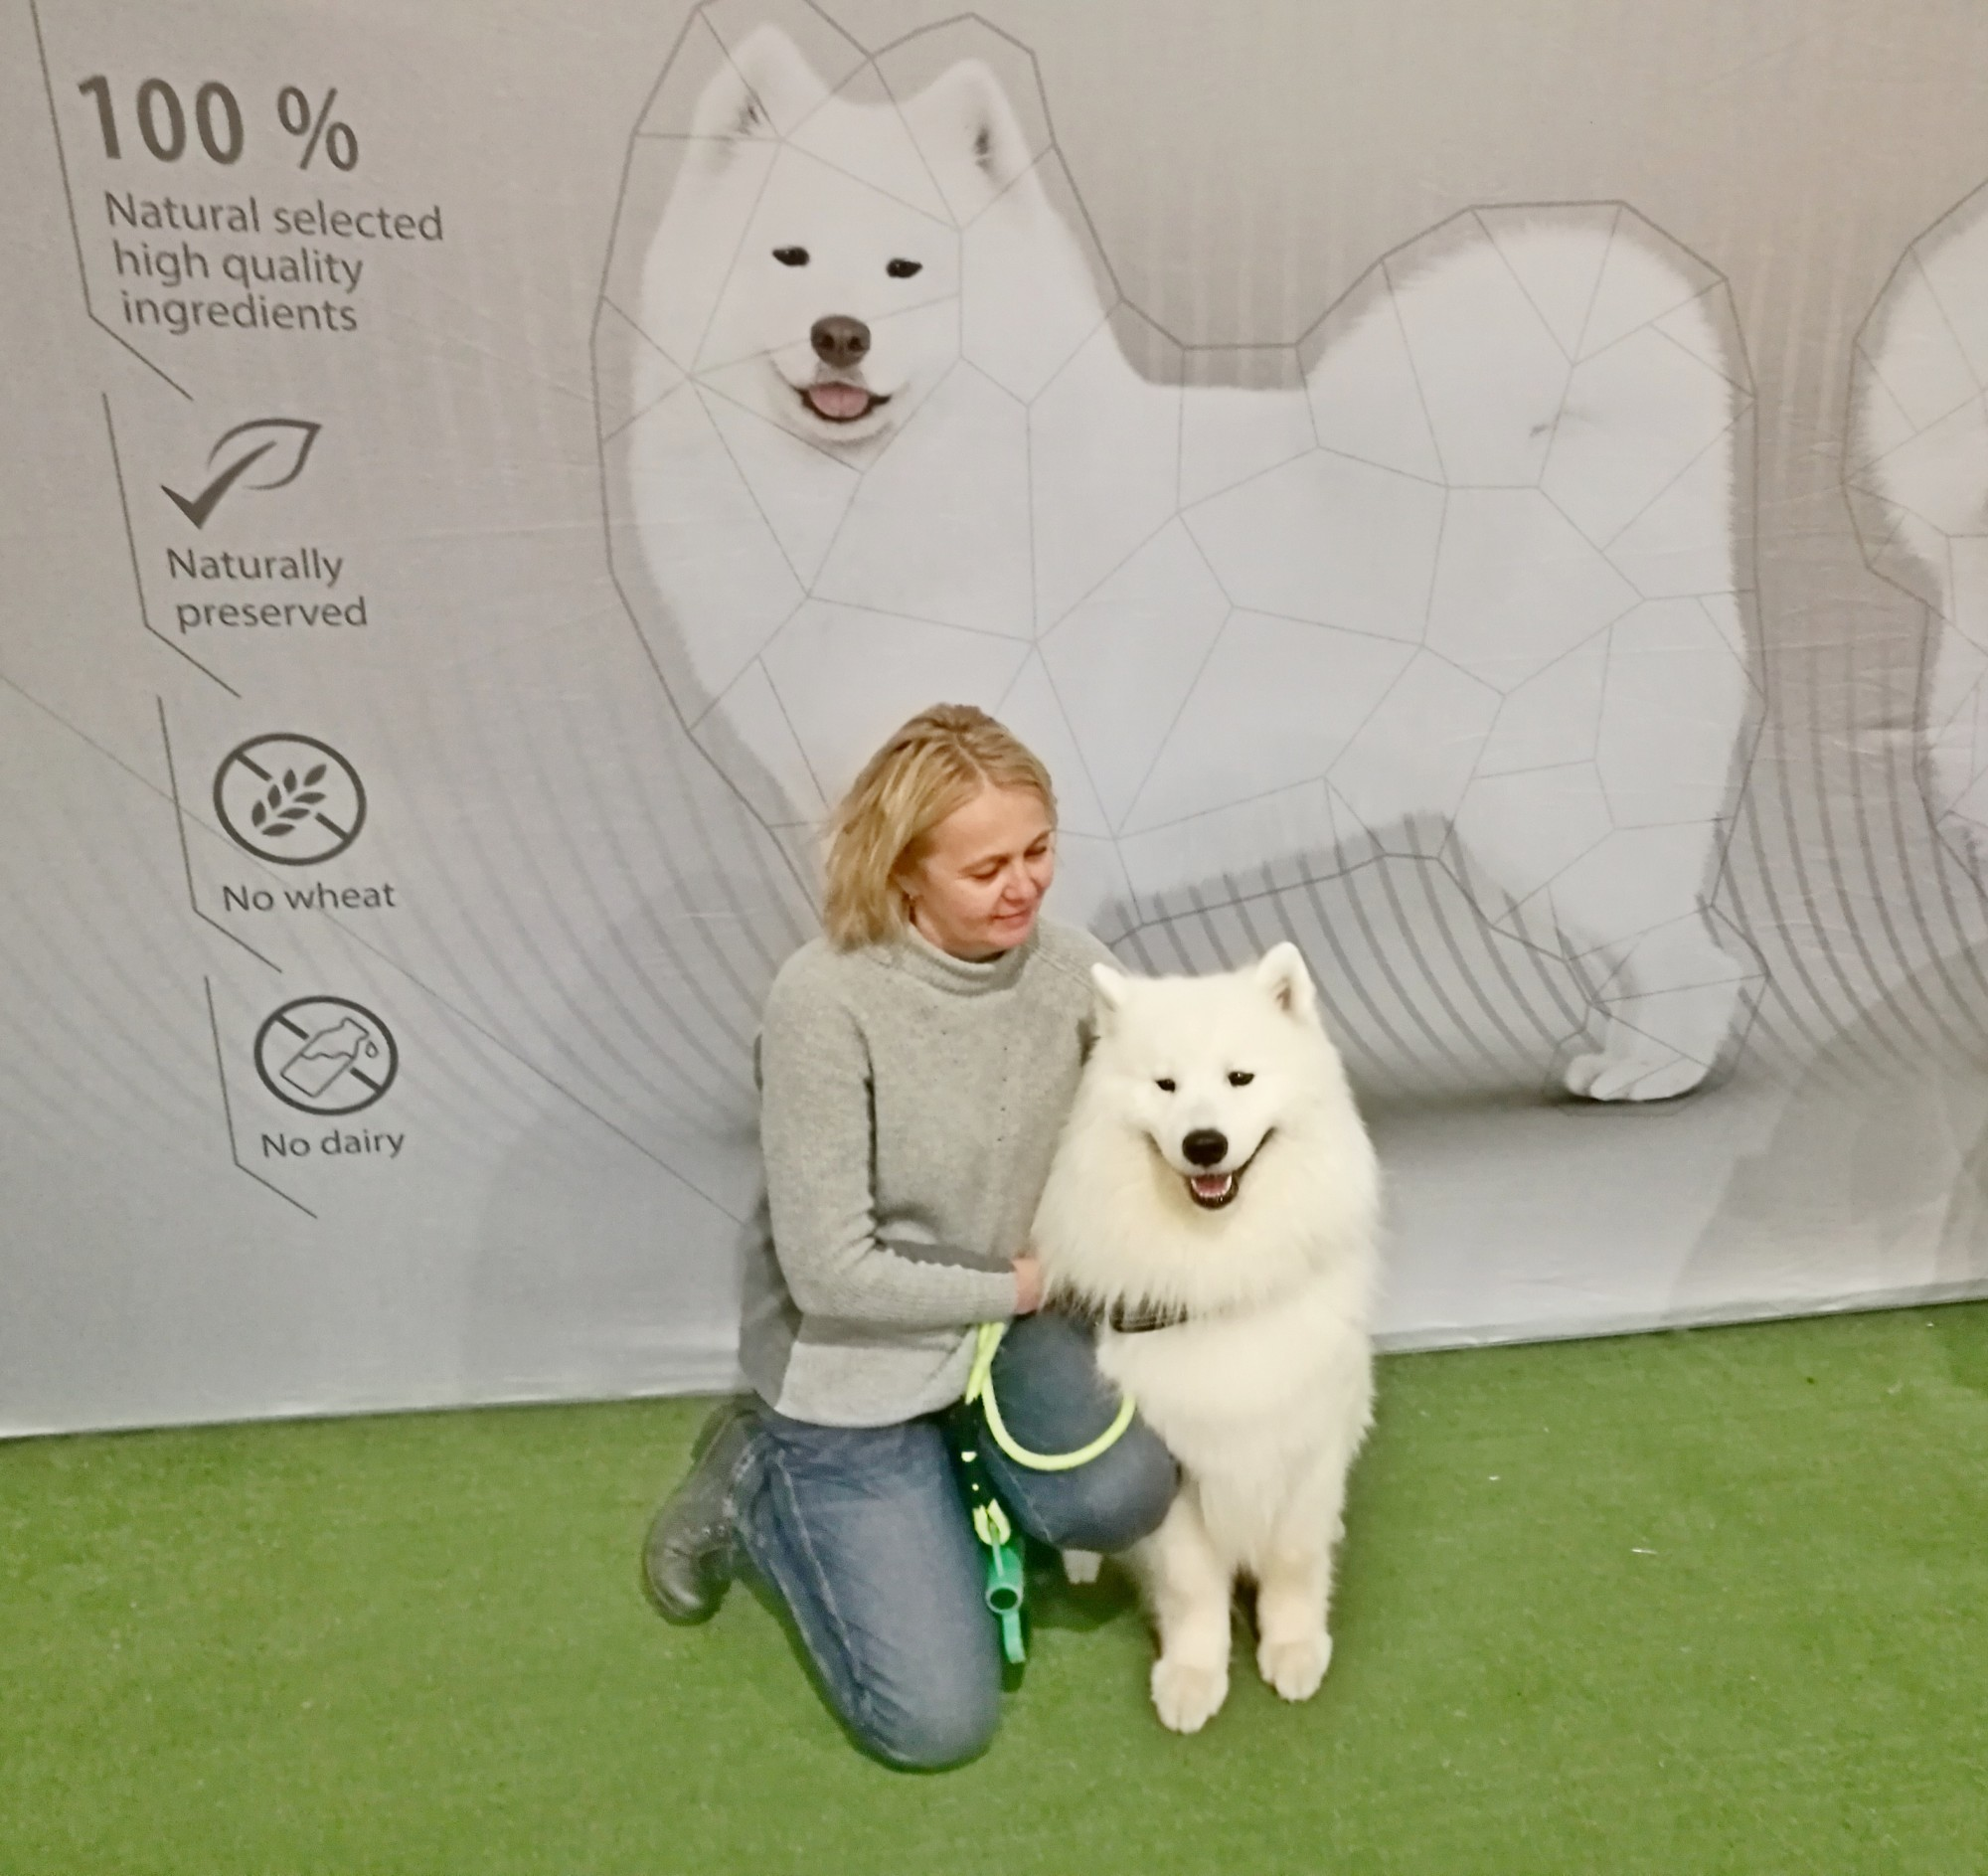 Highlights after the International Dog Show 2019 in